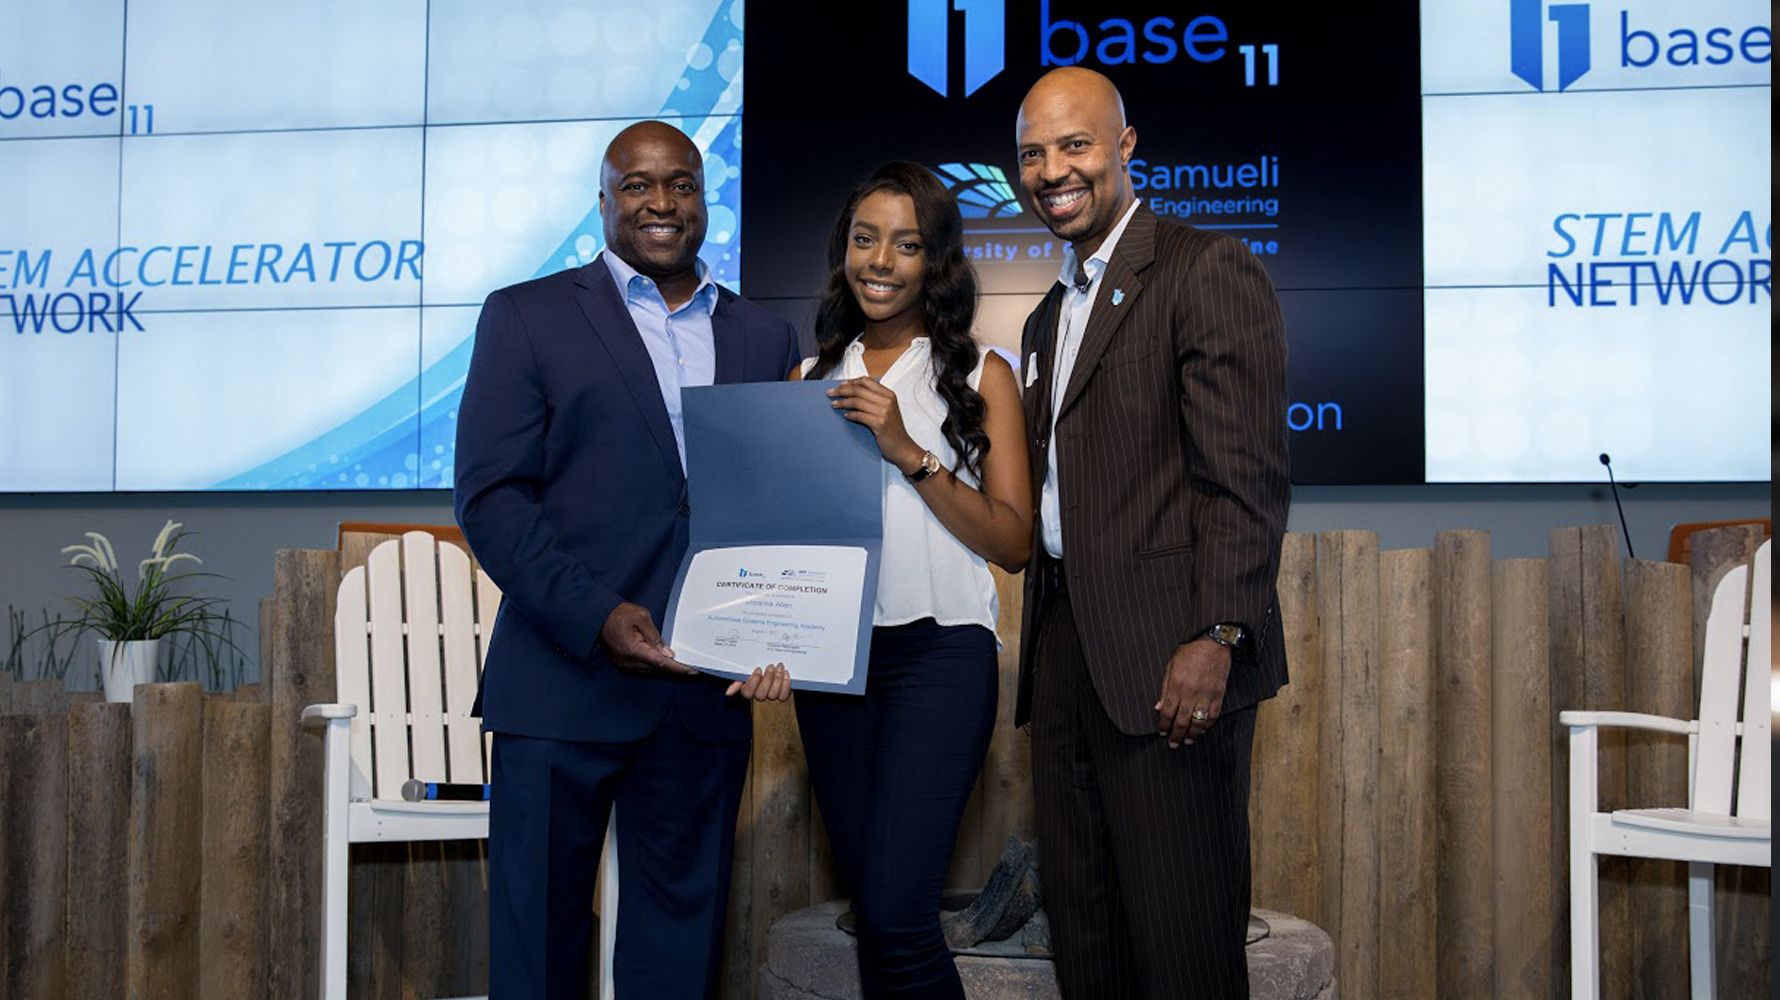 Photo: Breanna Allen, center, receives her certificate of completion for the University of California-Irvine Autonomous Engineering Academy.